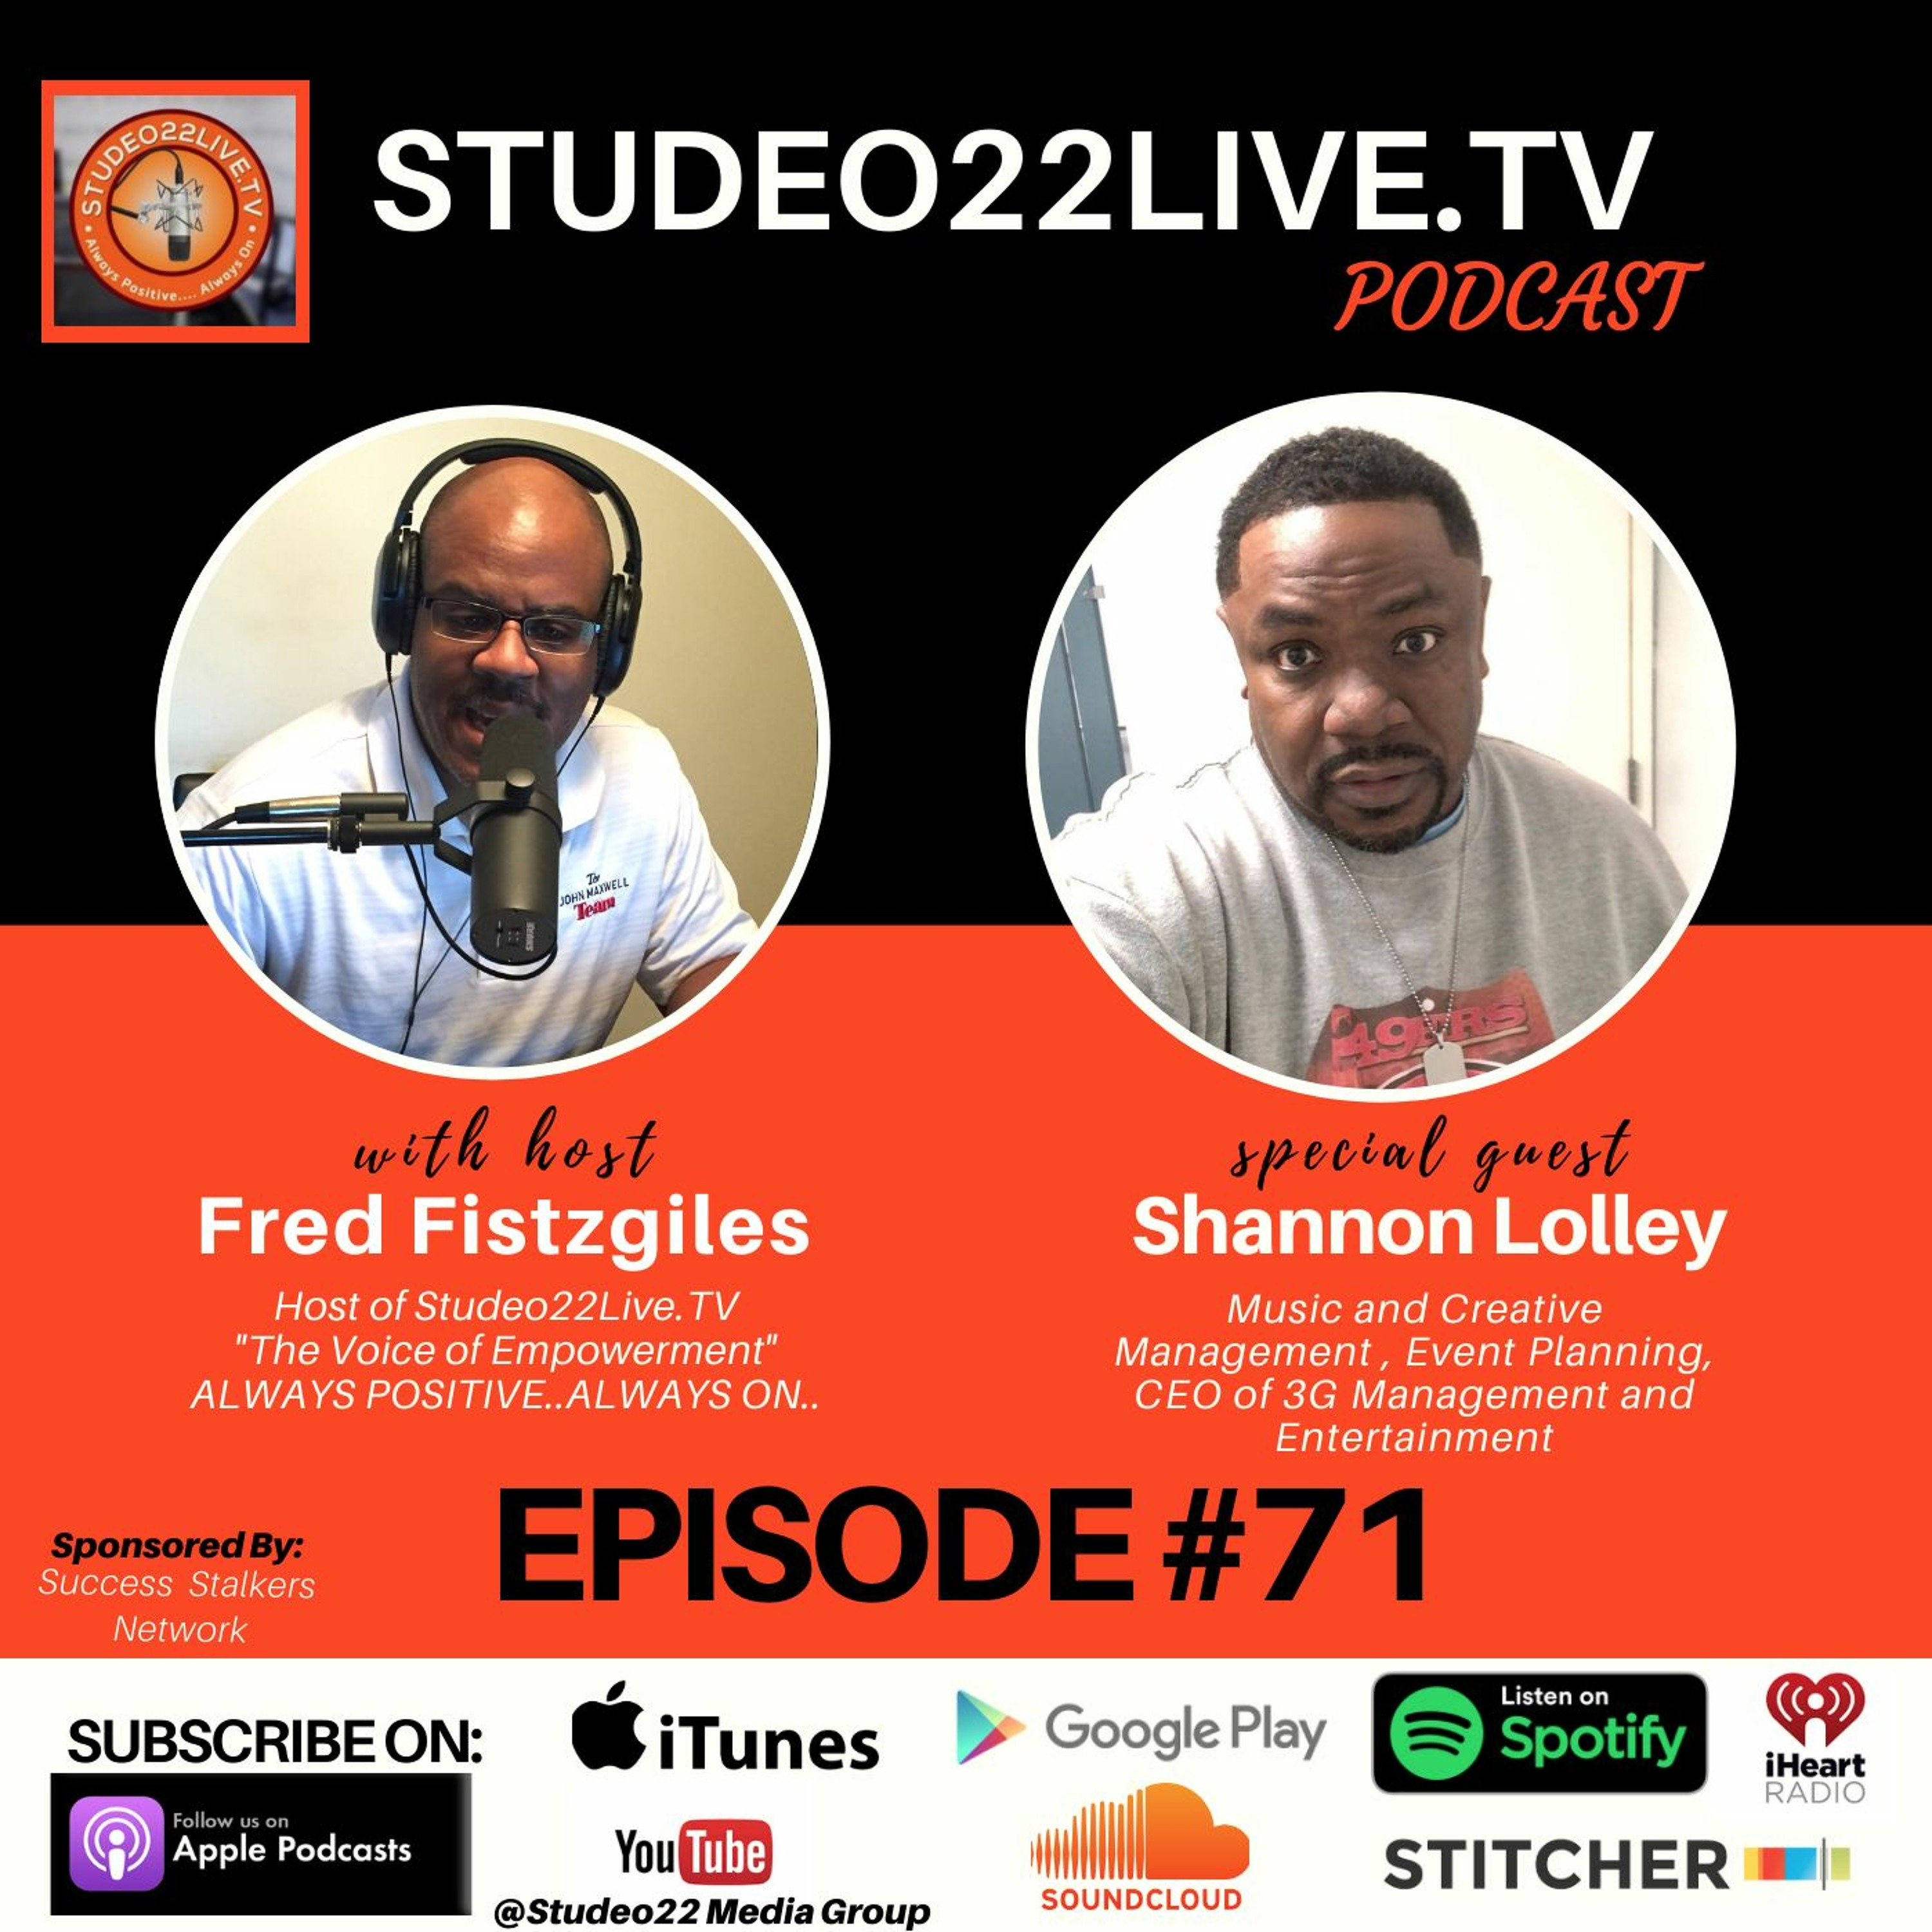 Episode #71 - Special Guest CEO of 3G Management Shannon Lolley Music & Creative